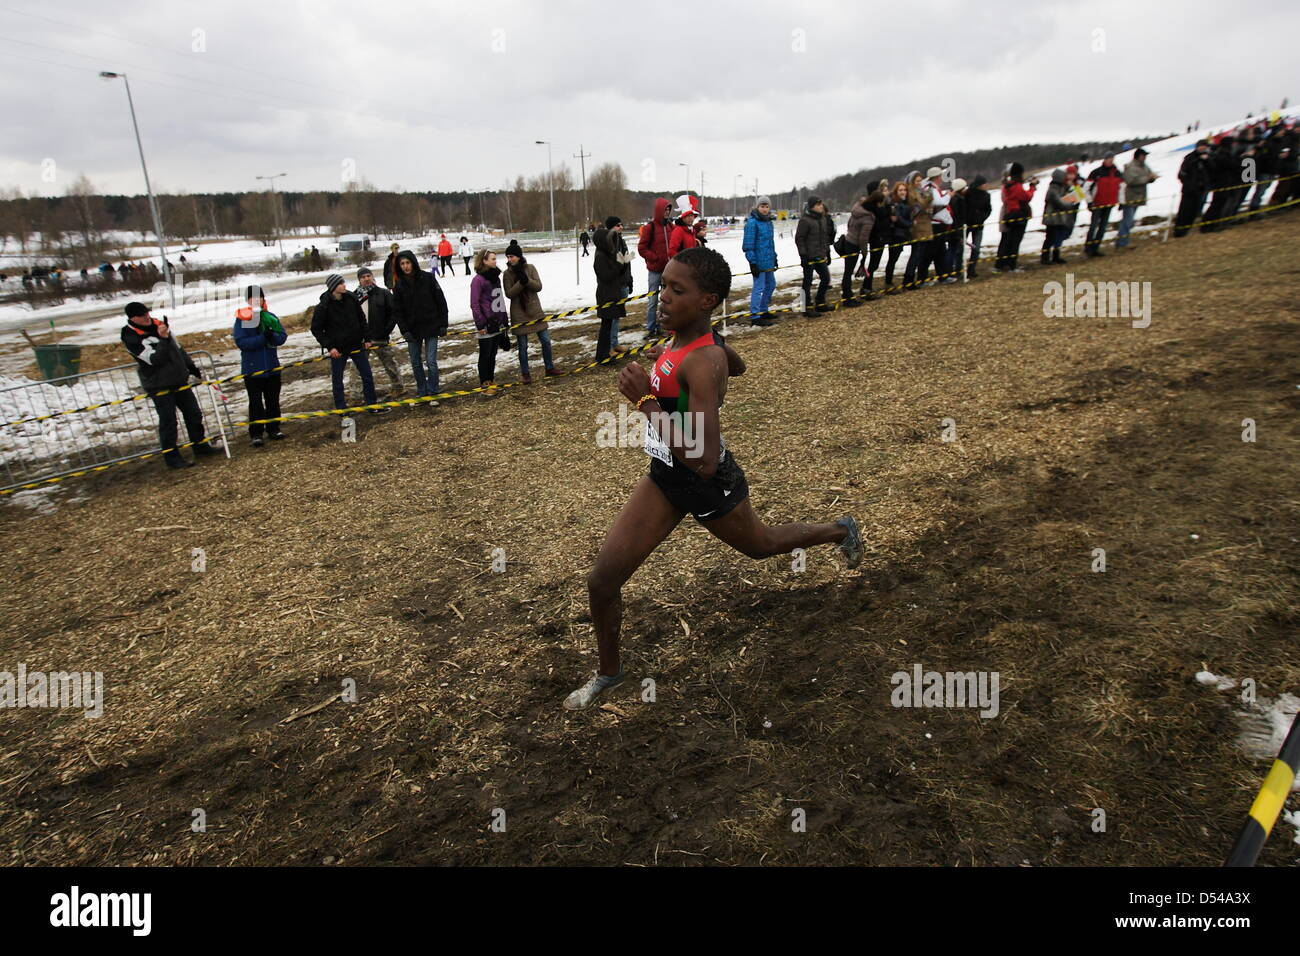 Bydgoszcz, Poland 24th, March 2013 IAAF World Cross Country Chamiponships. Junior Race Woman. - Stock Image